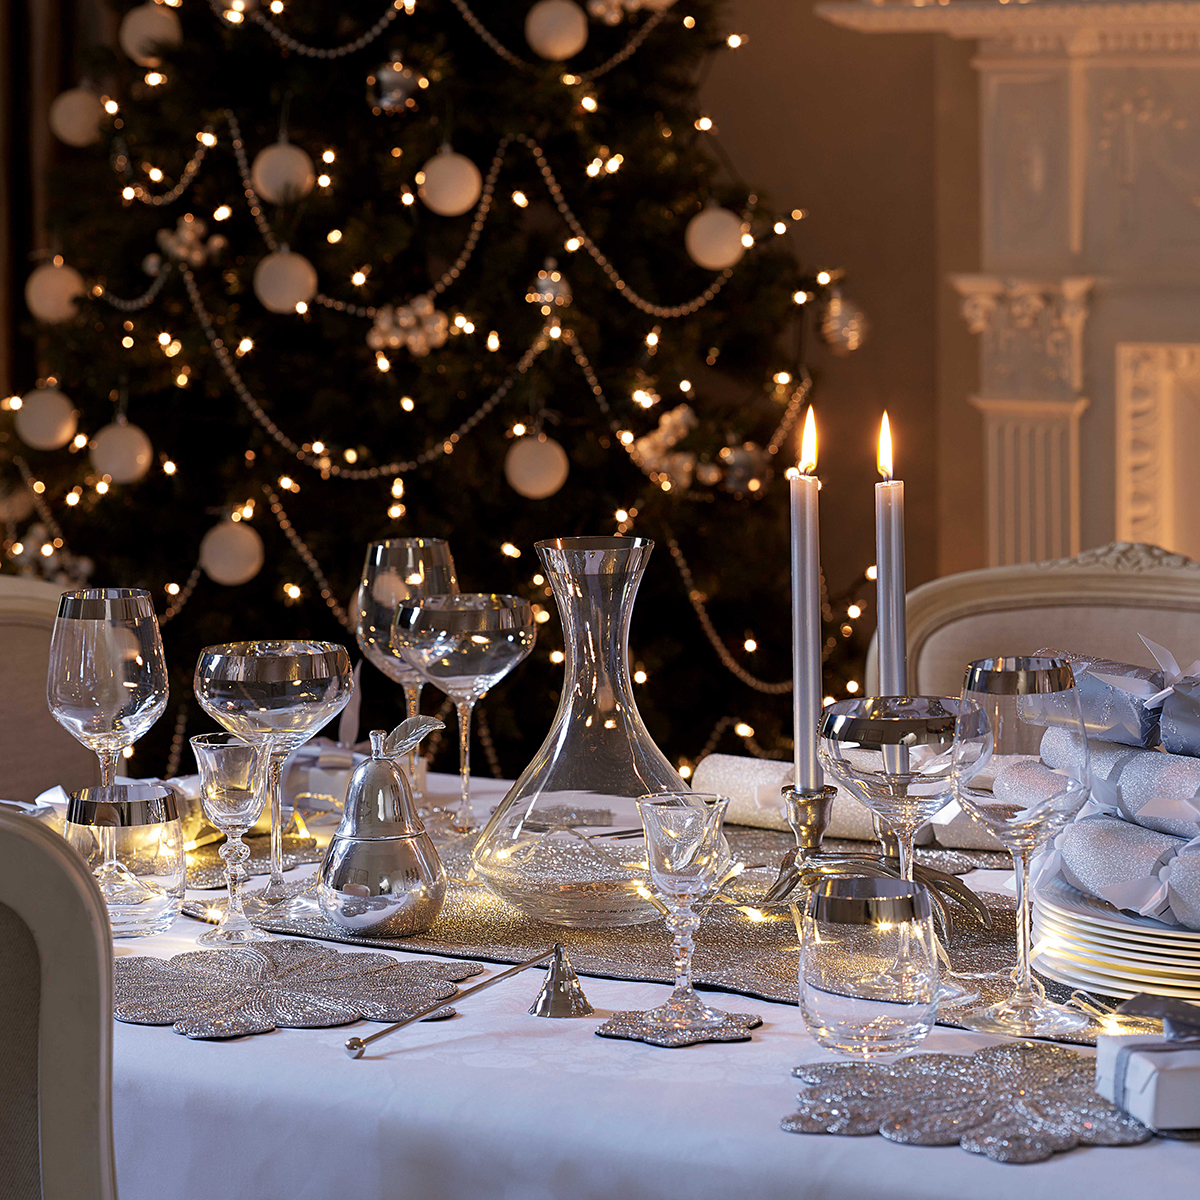 christmas table decoration ideas for festive dining. Black Bedroom Furniture Sets. Home Design Ideas